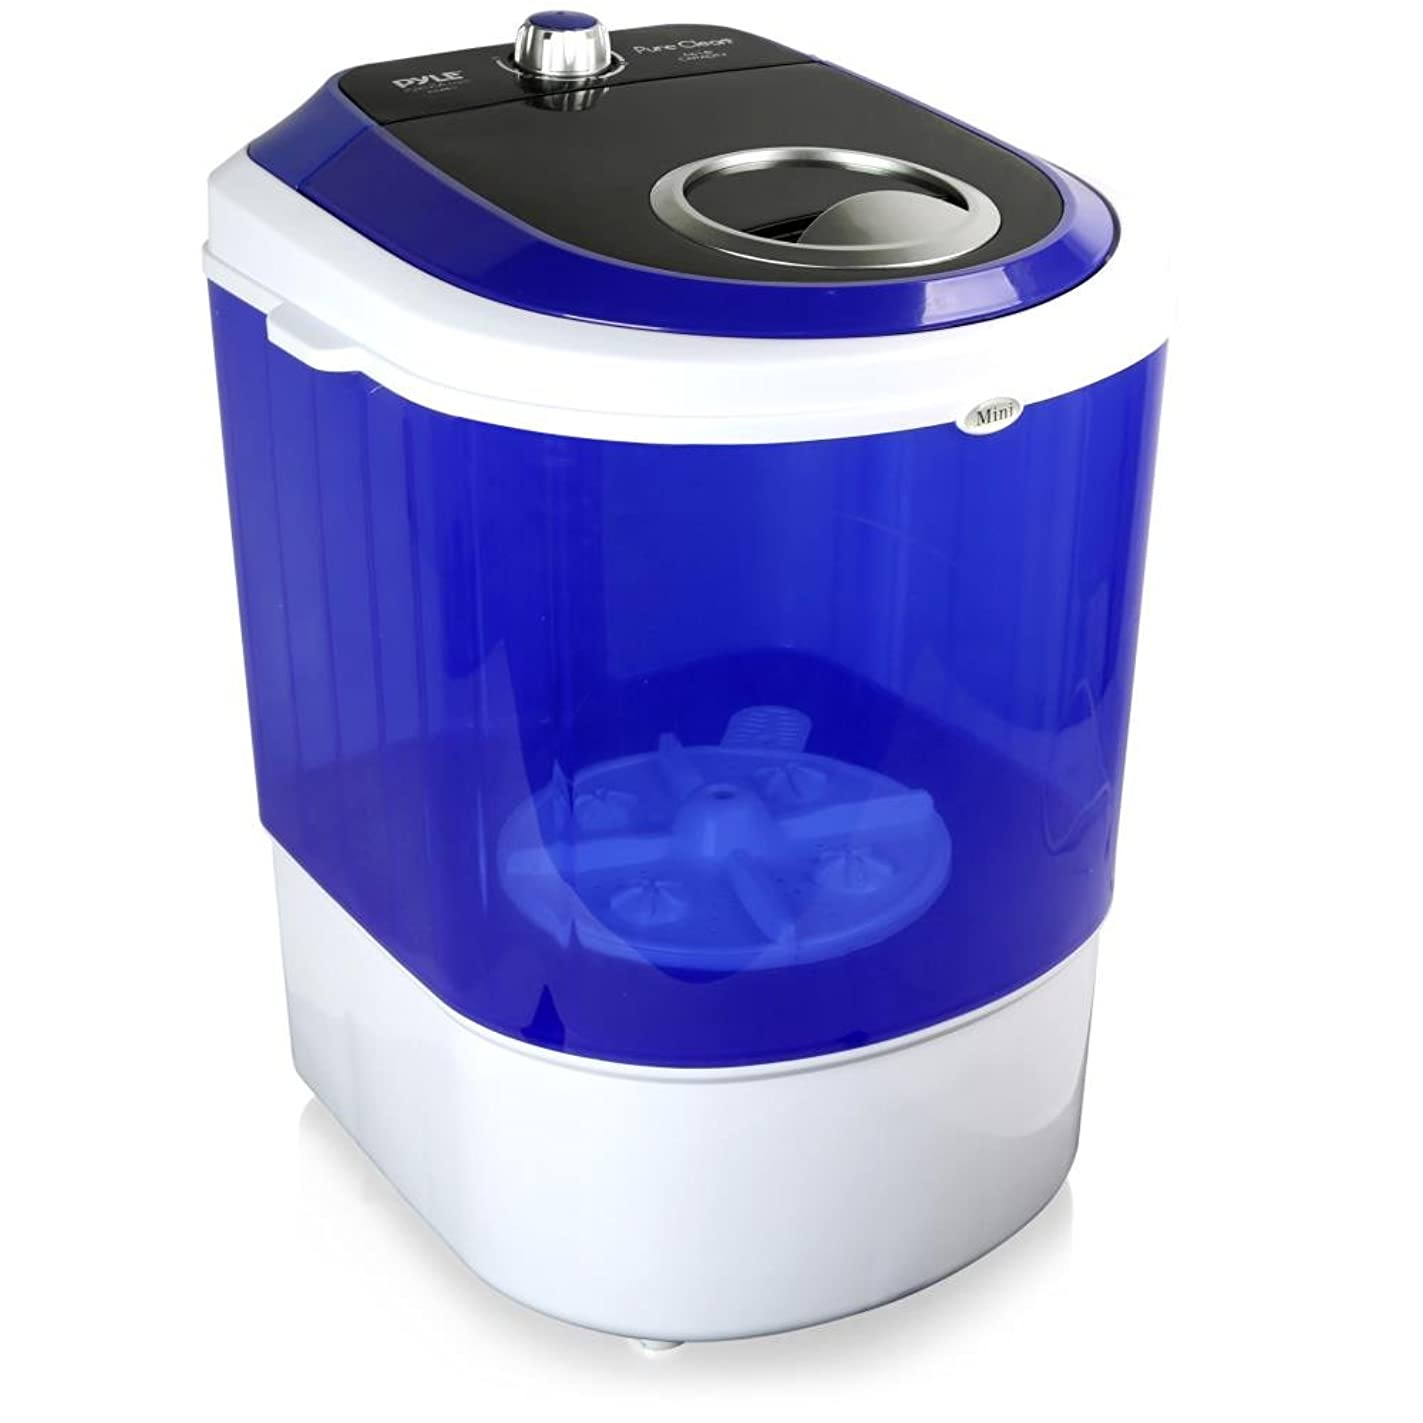 Pyle Upgraded Version Portable Washer - Top Loader Portable Laundry, Mini Washing Machine, Quiet Washer, Rotary Controller, 110V - For Compact Laundry, 4.5 Lbs. Capacity, Translucent Tubs - PUCWM11